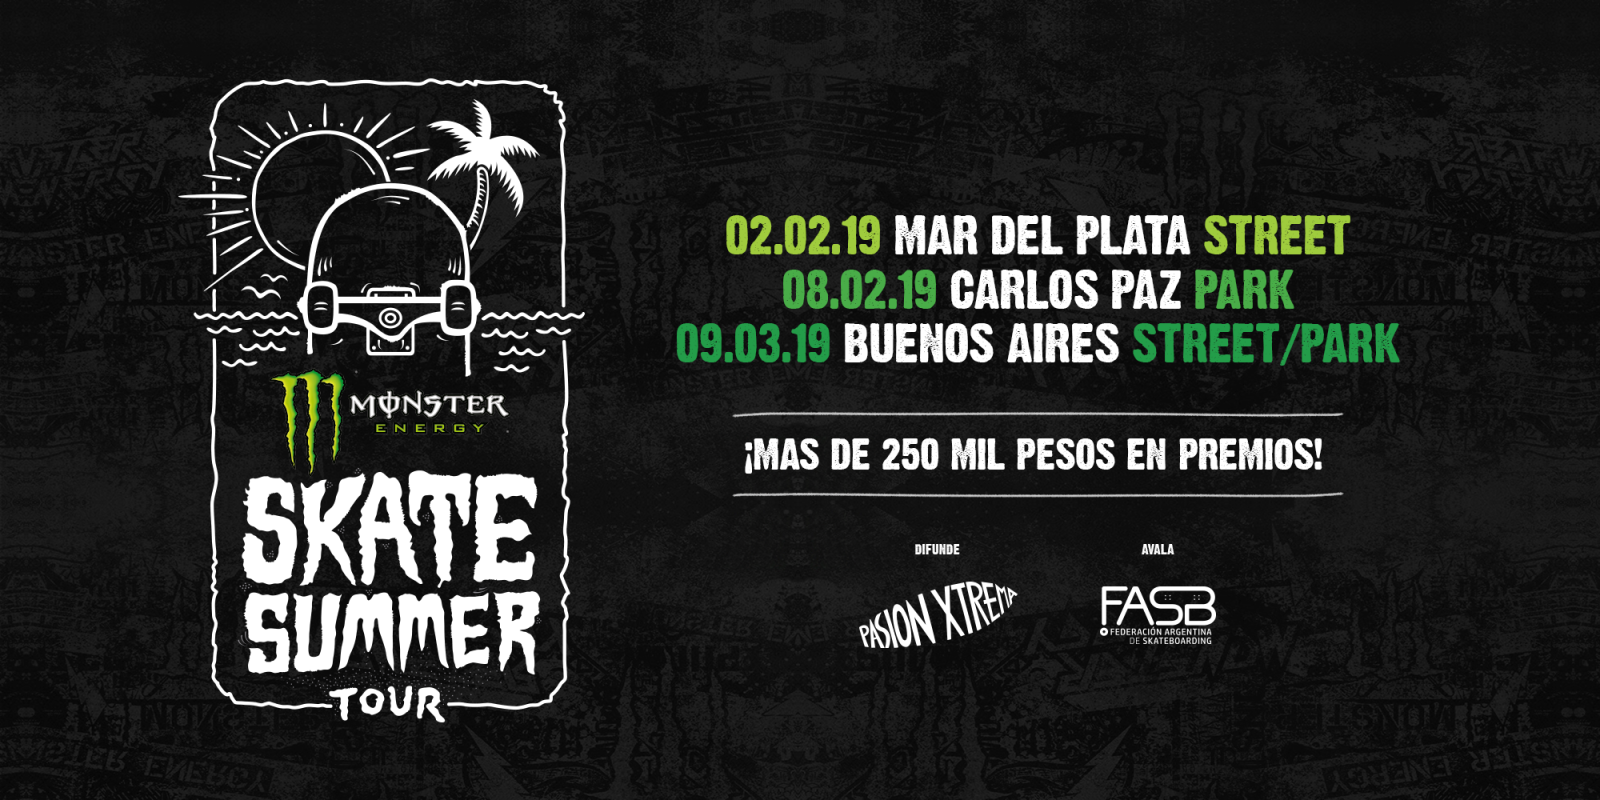 Digital assets for Summer Tour skate competition in Argentina